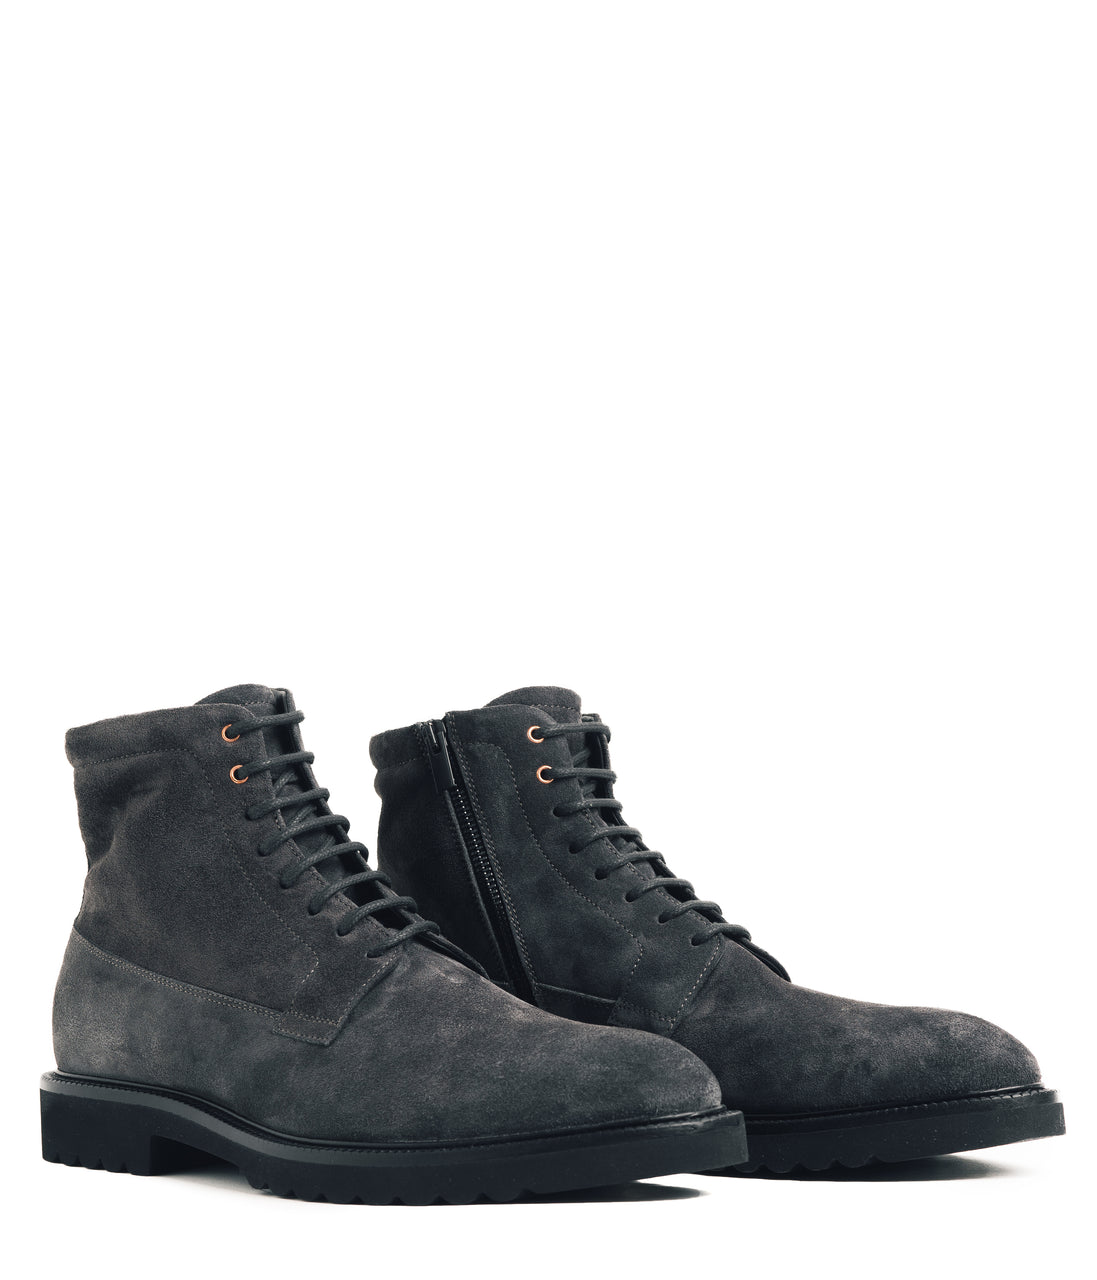 Derby MicroLight Suede Boot - Charcoal - Good Man Brand - Derby MicroLight Suede Boot - Charcoal - Footwear - Good Man Brand